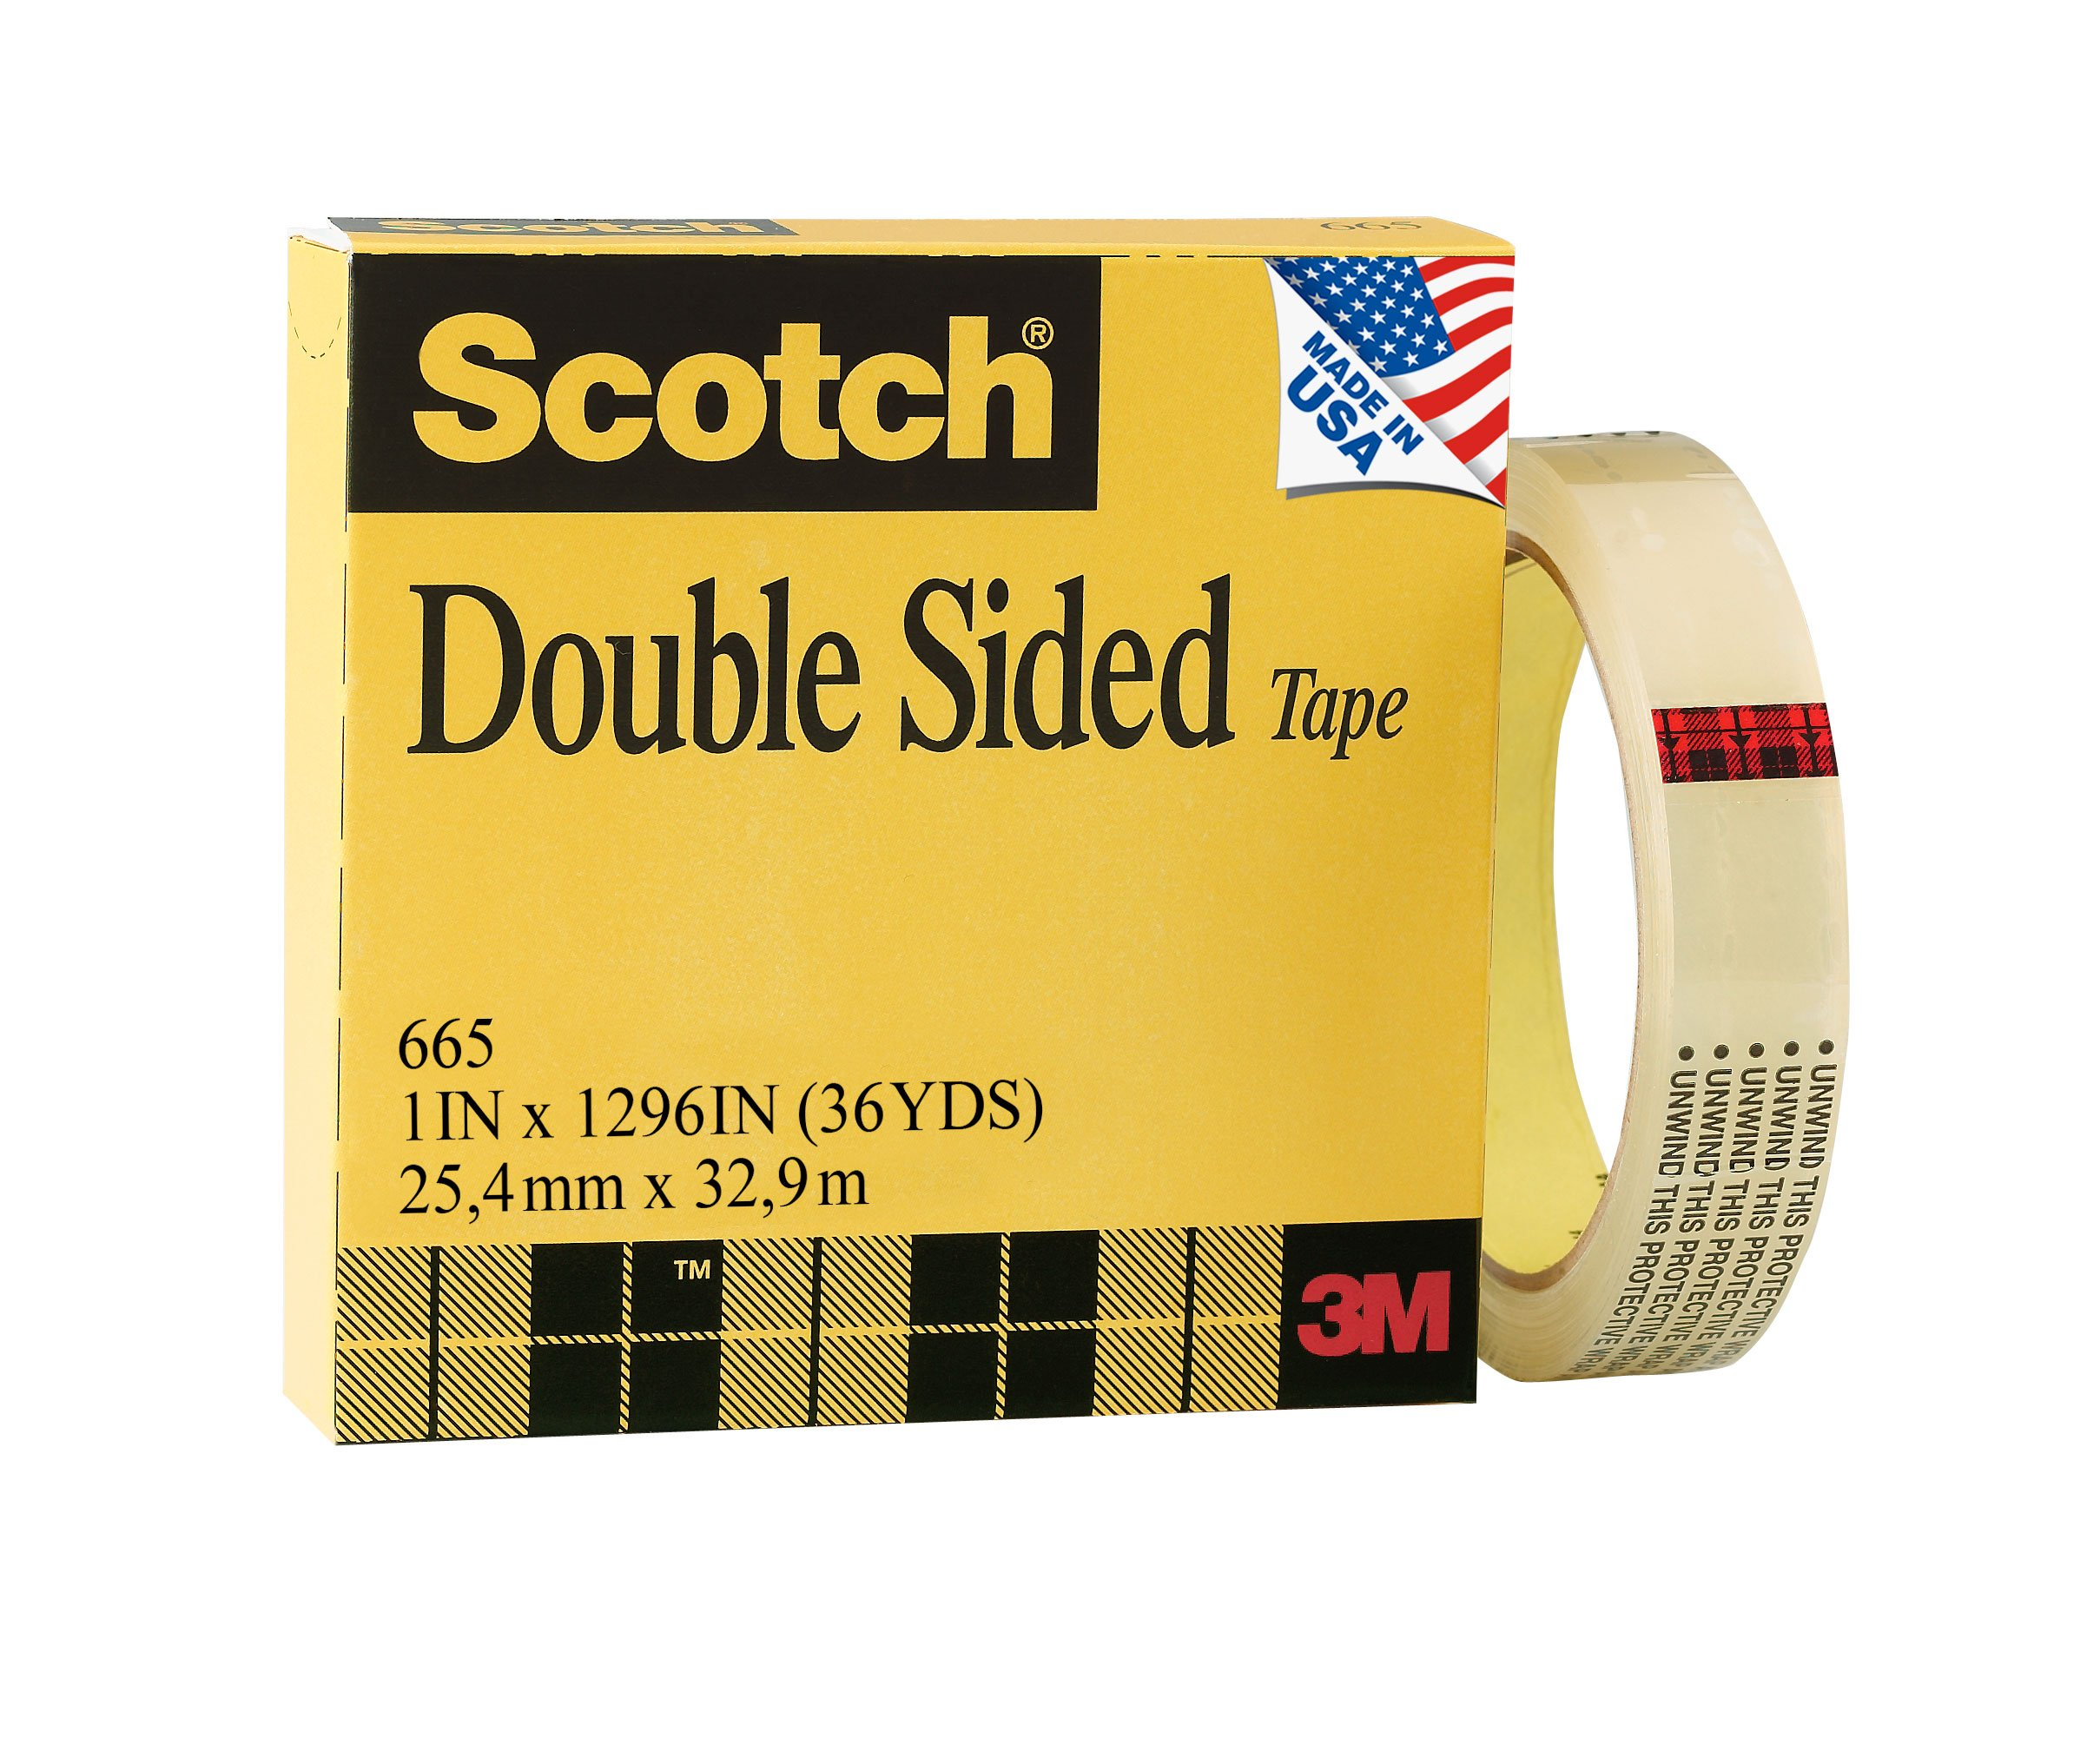 Scotch Double Sided Tape, Trusted Favorite, Engineered for Office and Home Use, Wide Width, 1 x 1296 Inches, Boxed (665)